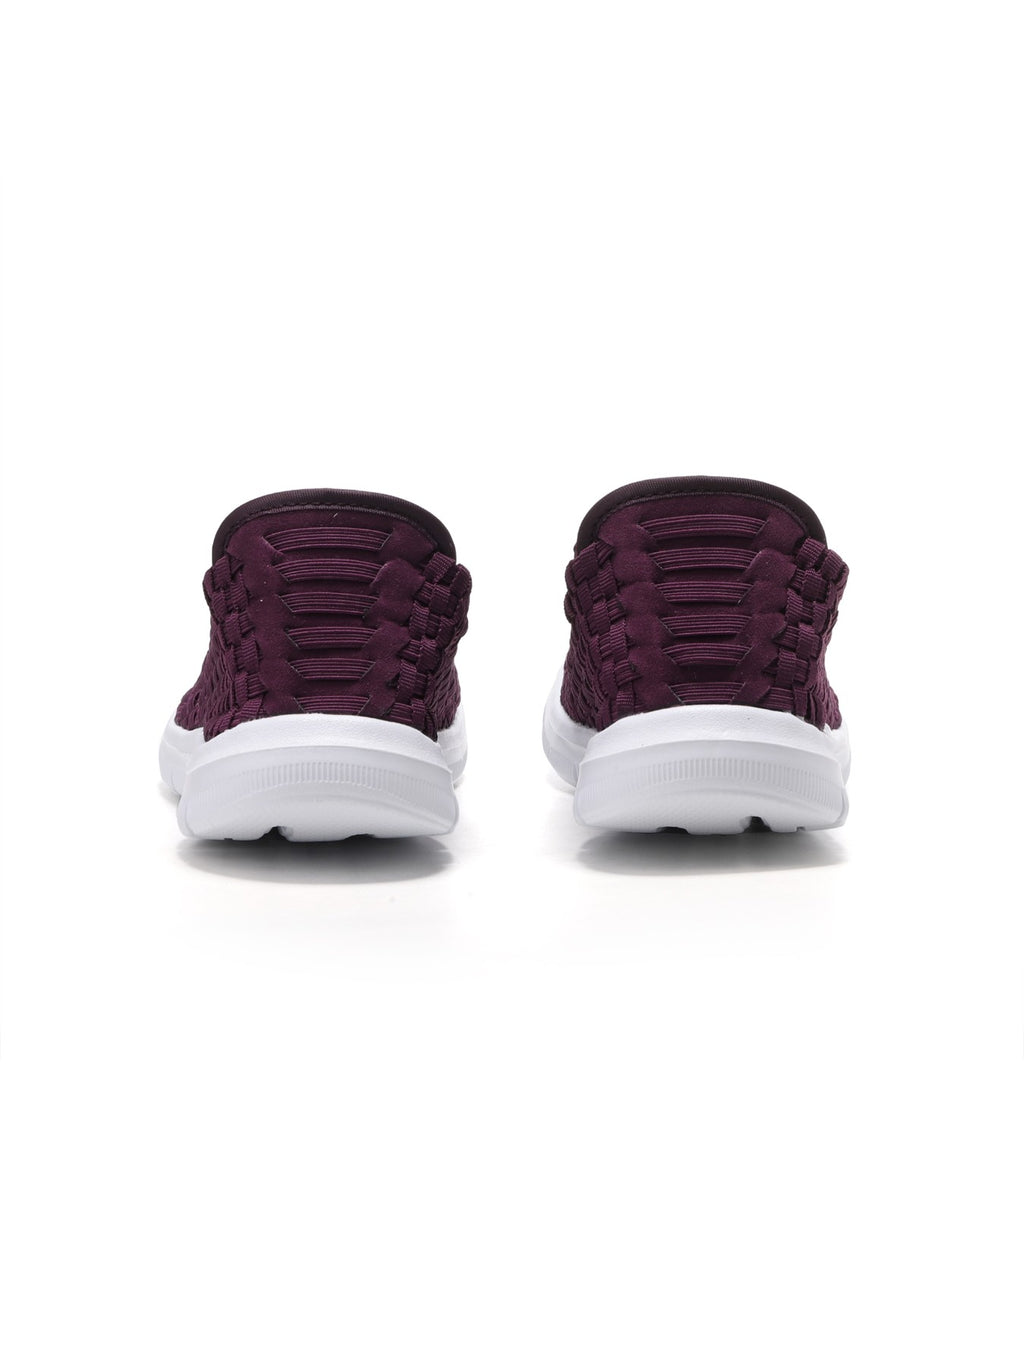 Larrie Purple Interlaced Fashionable Sporty Sneakers